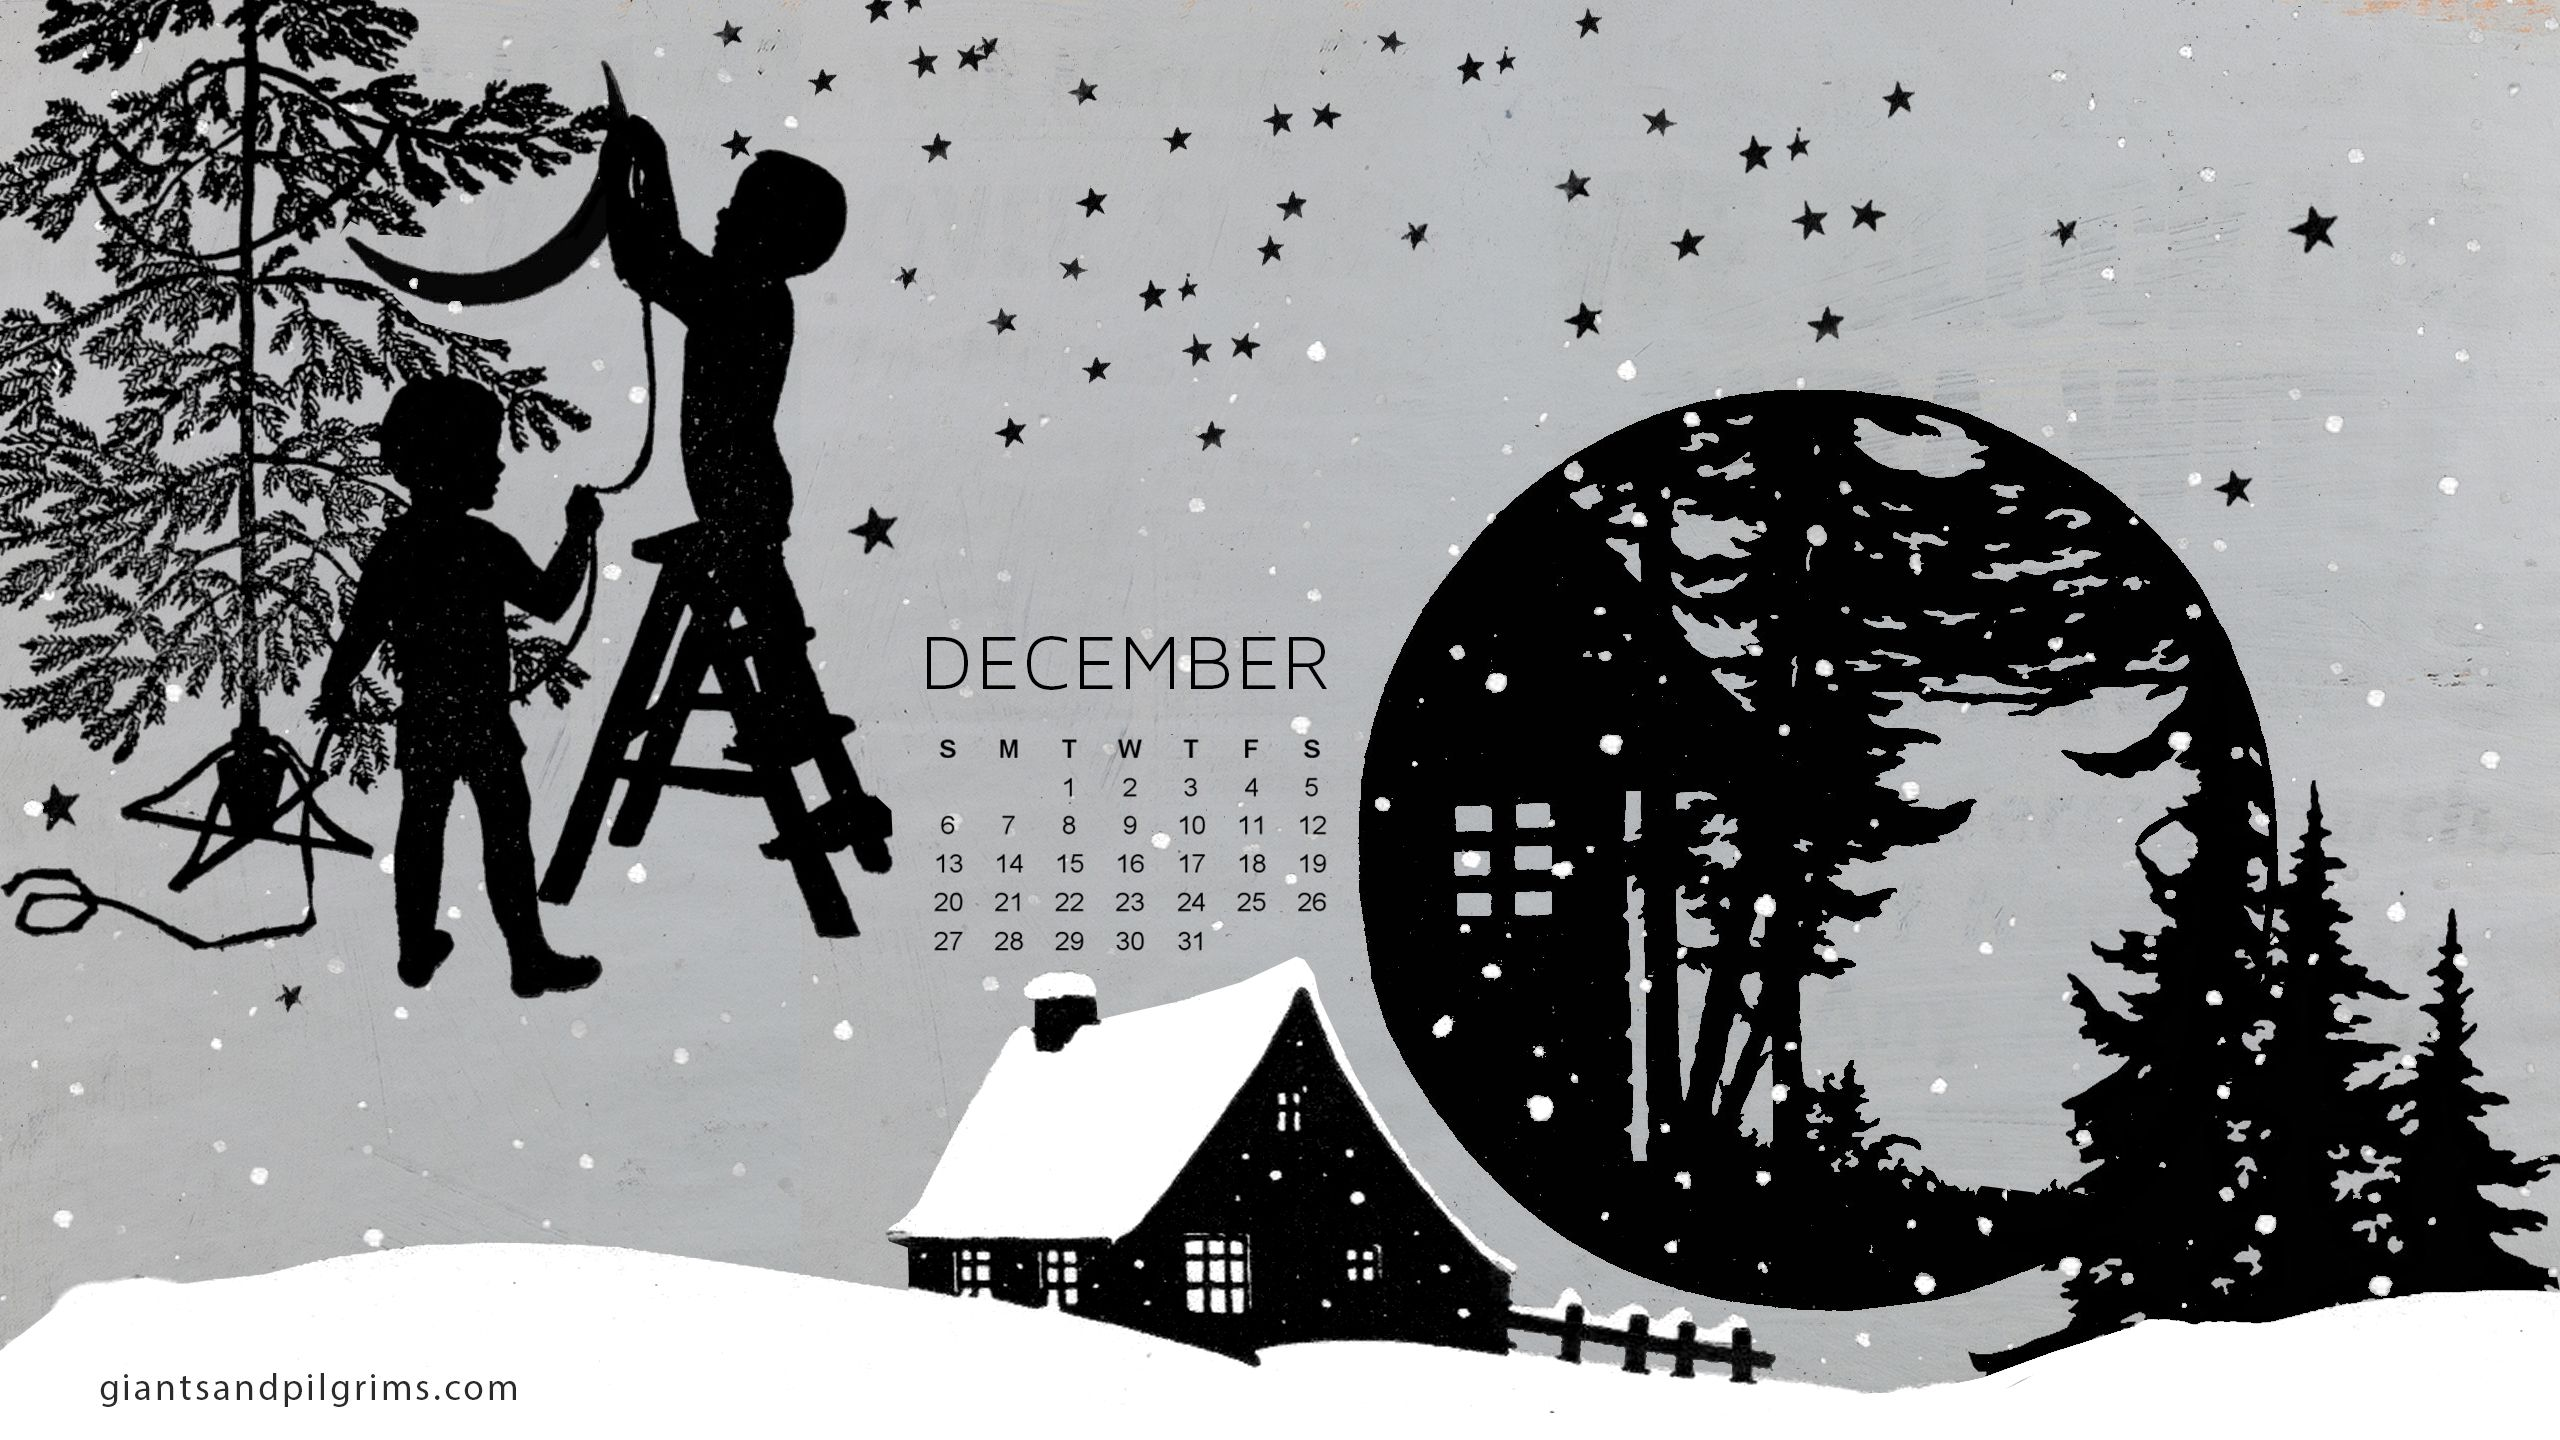 December Calendar Art : Giants pilgrims december calendar free desktop and iphone